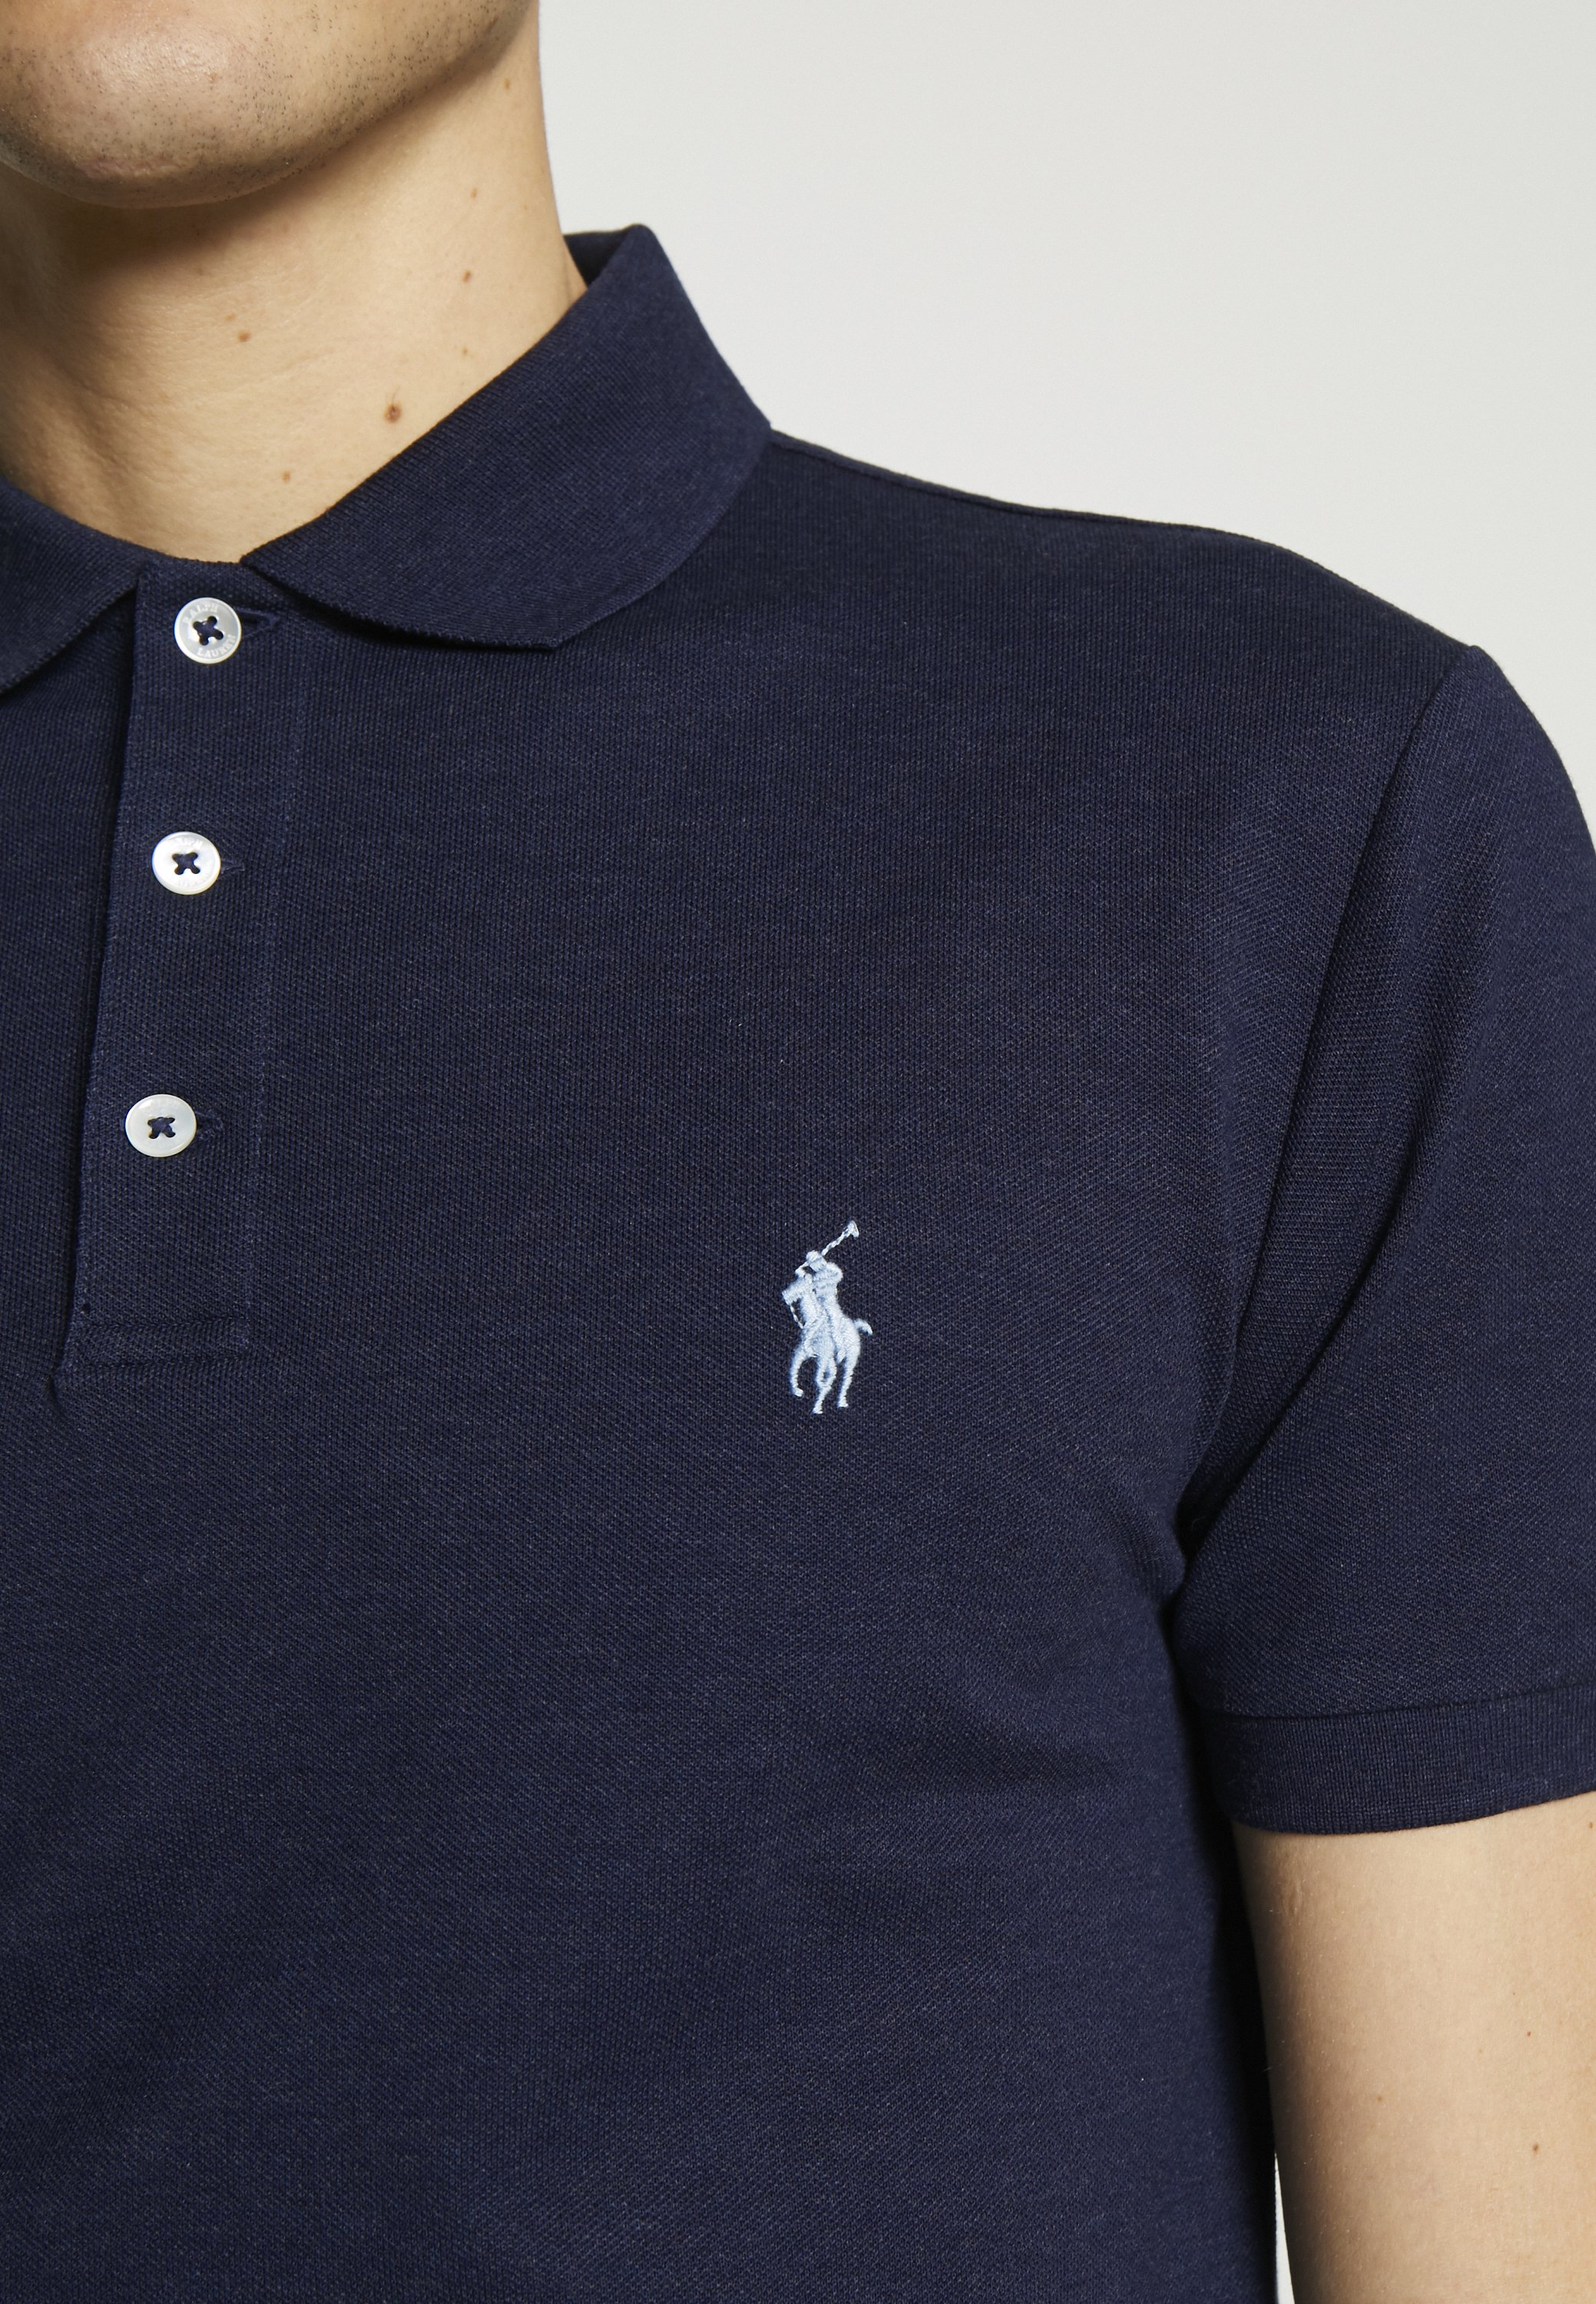 Polo Ralph Lauren SLIM FIT MODEL - Piké - spring navy - Herrkläder Rabatter